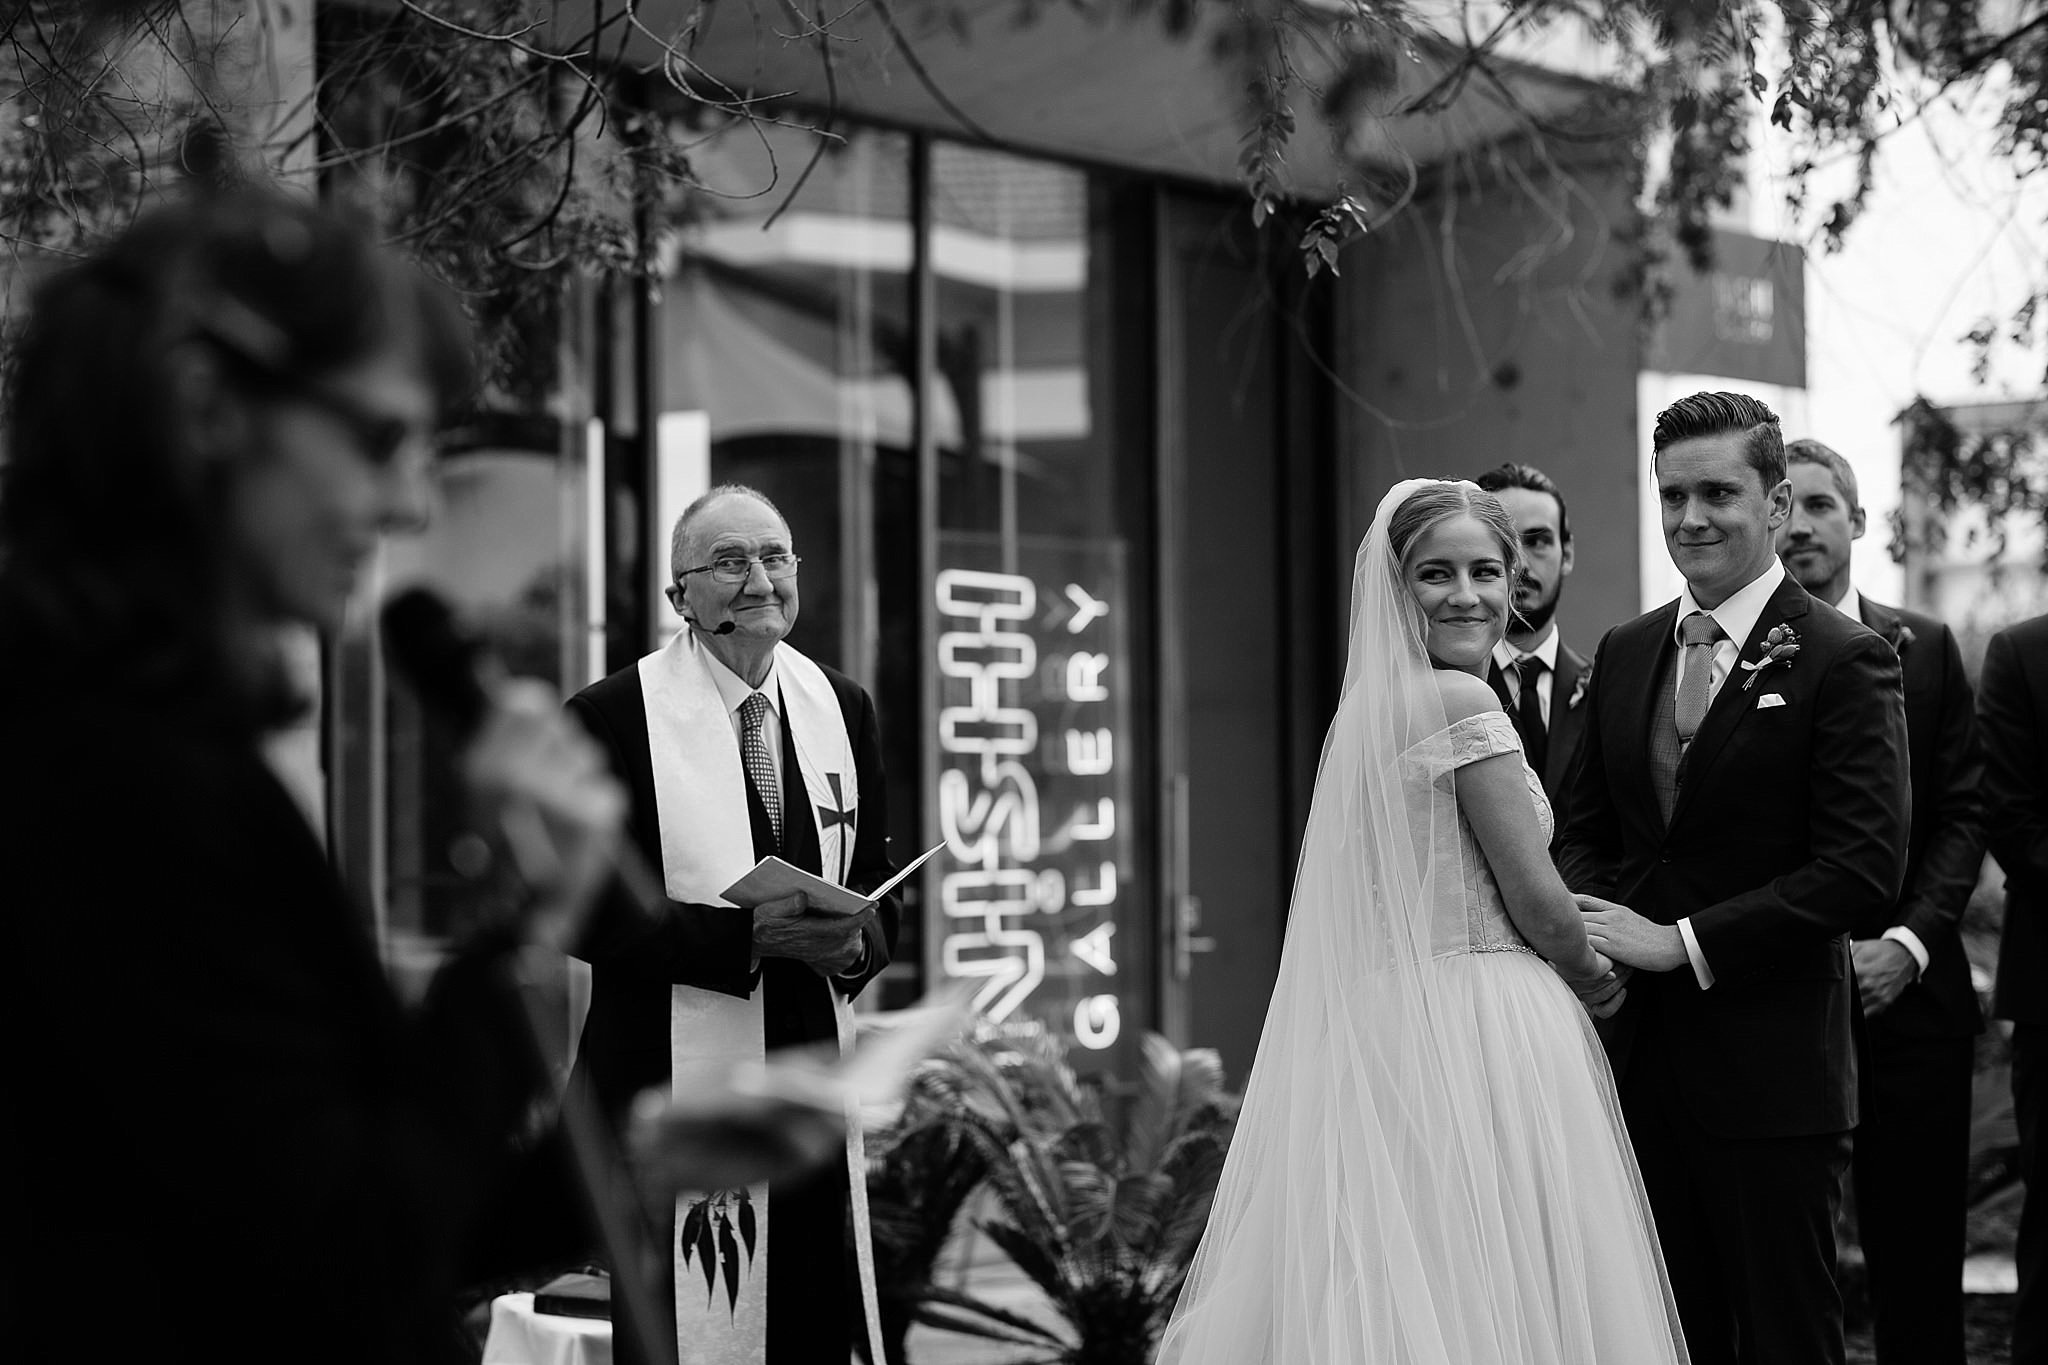 Keepsakephoto by the Keeffes,ACT wedding photographer,ACT weddings,canberra wedding,Canberra Wedding Photographer,Canberra Wedding Photography,canberra weddings,Parlour,autumn wedding,Parlour Wine room wedding,Nishi gallery wedding,New Acton,Canberra Urban Wedding,